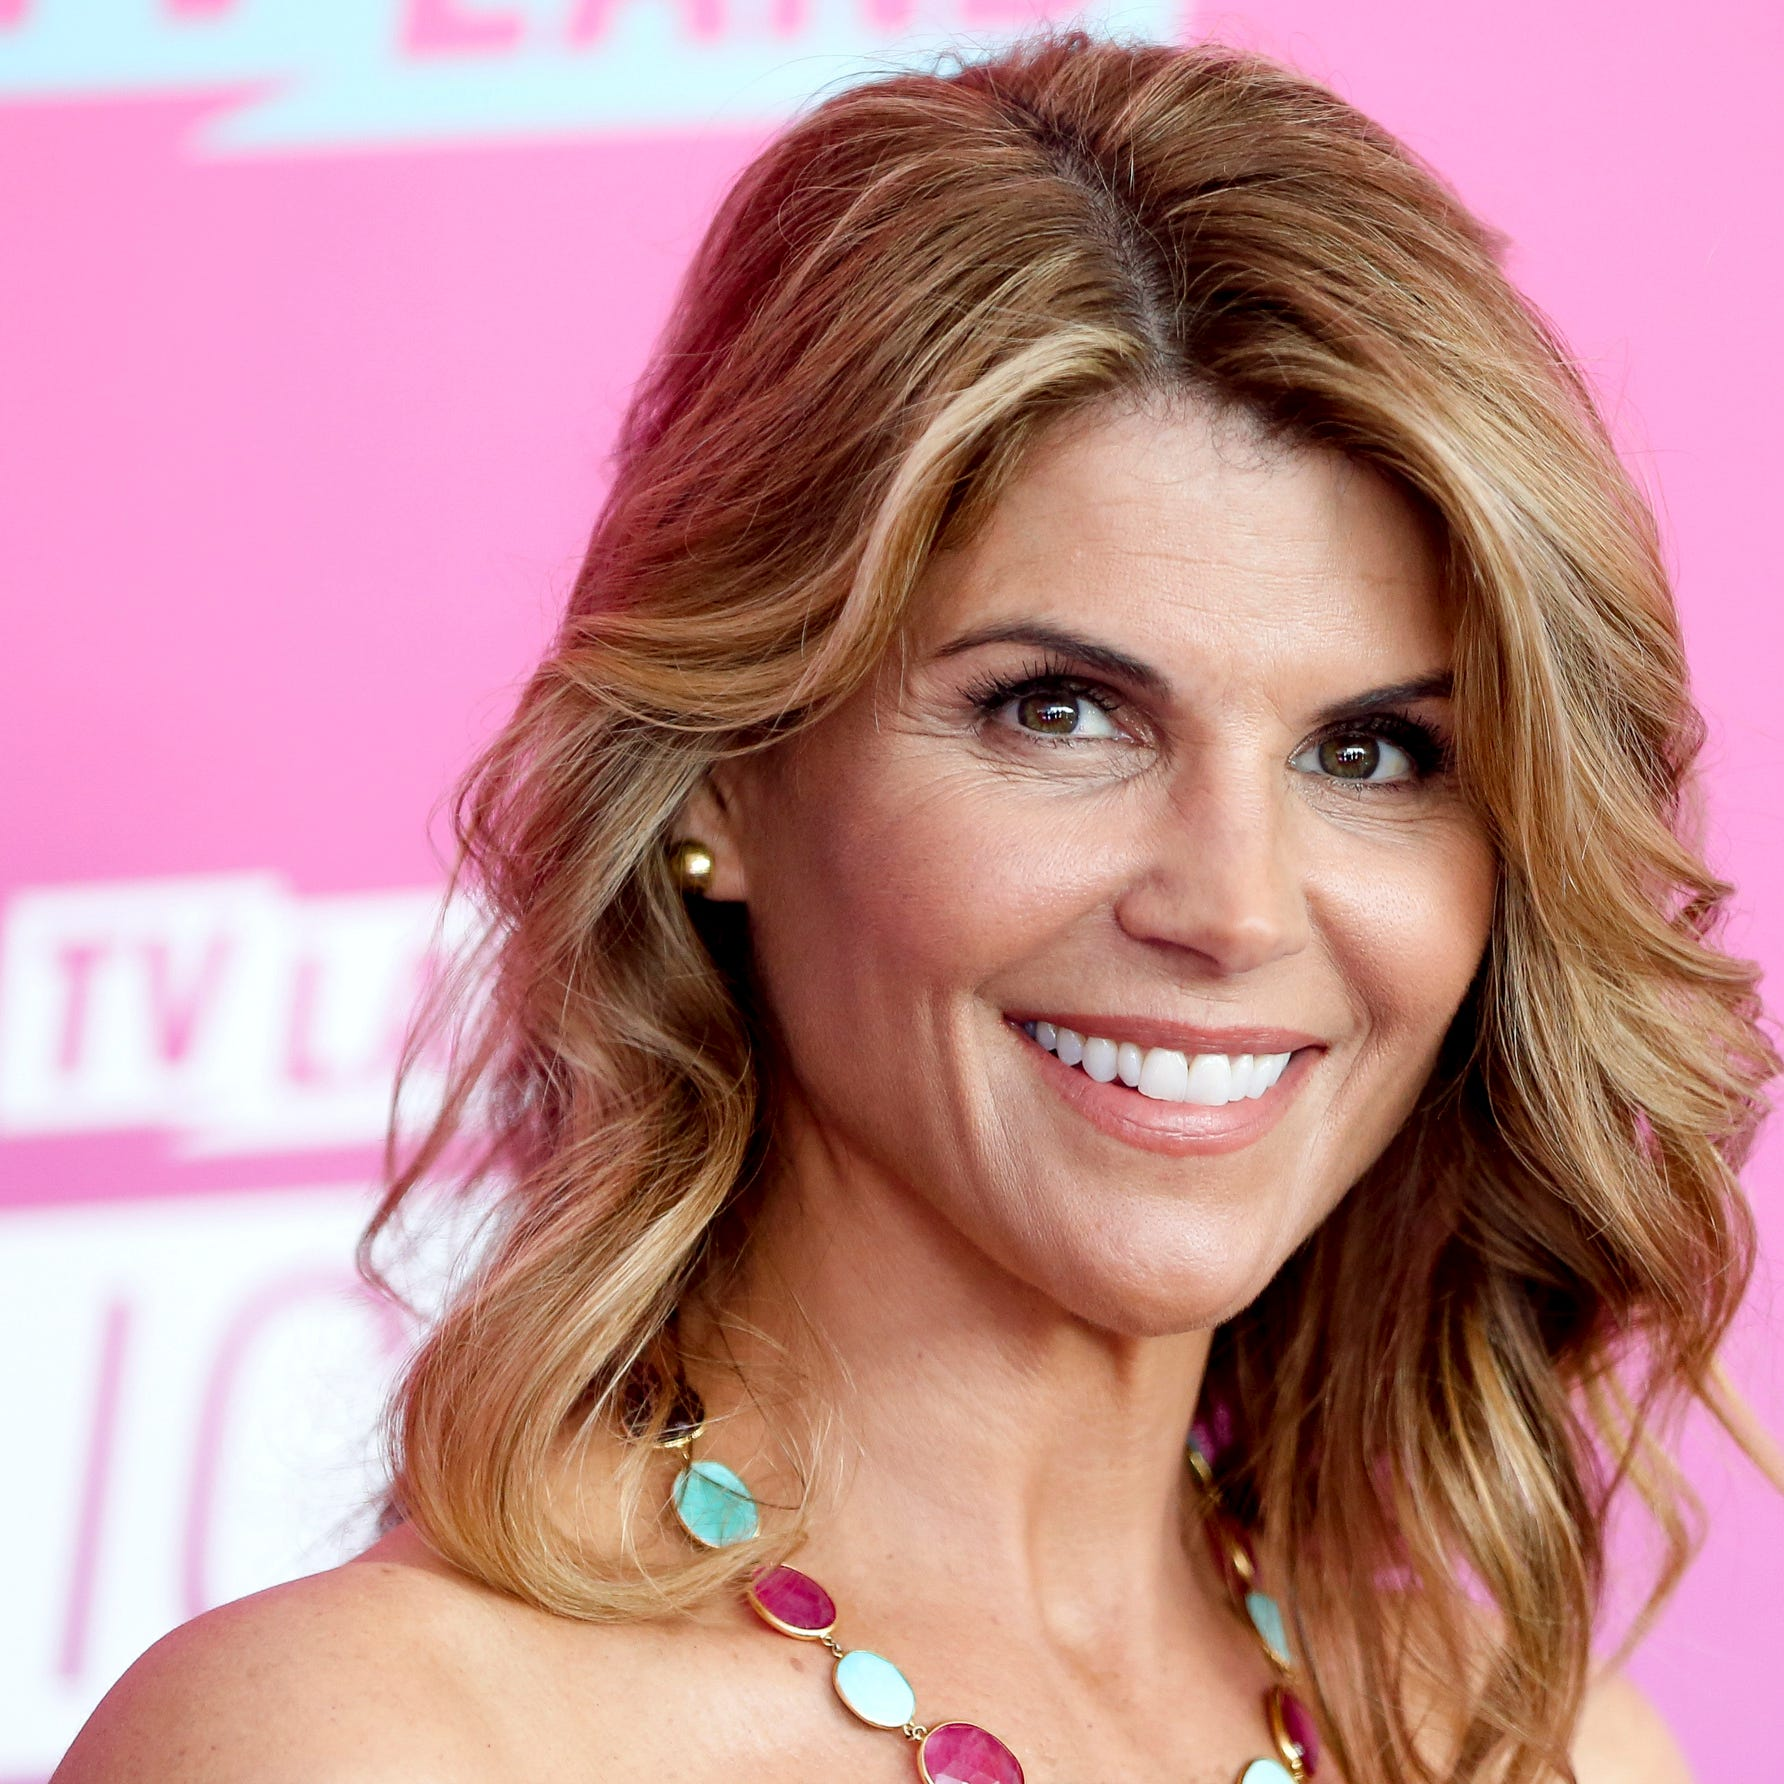 Lori Loughlin's former Hallmark co-stars say the cheating scandal put them in 'tough spot'